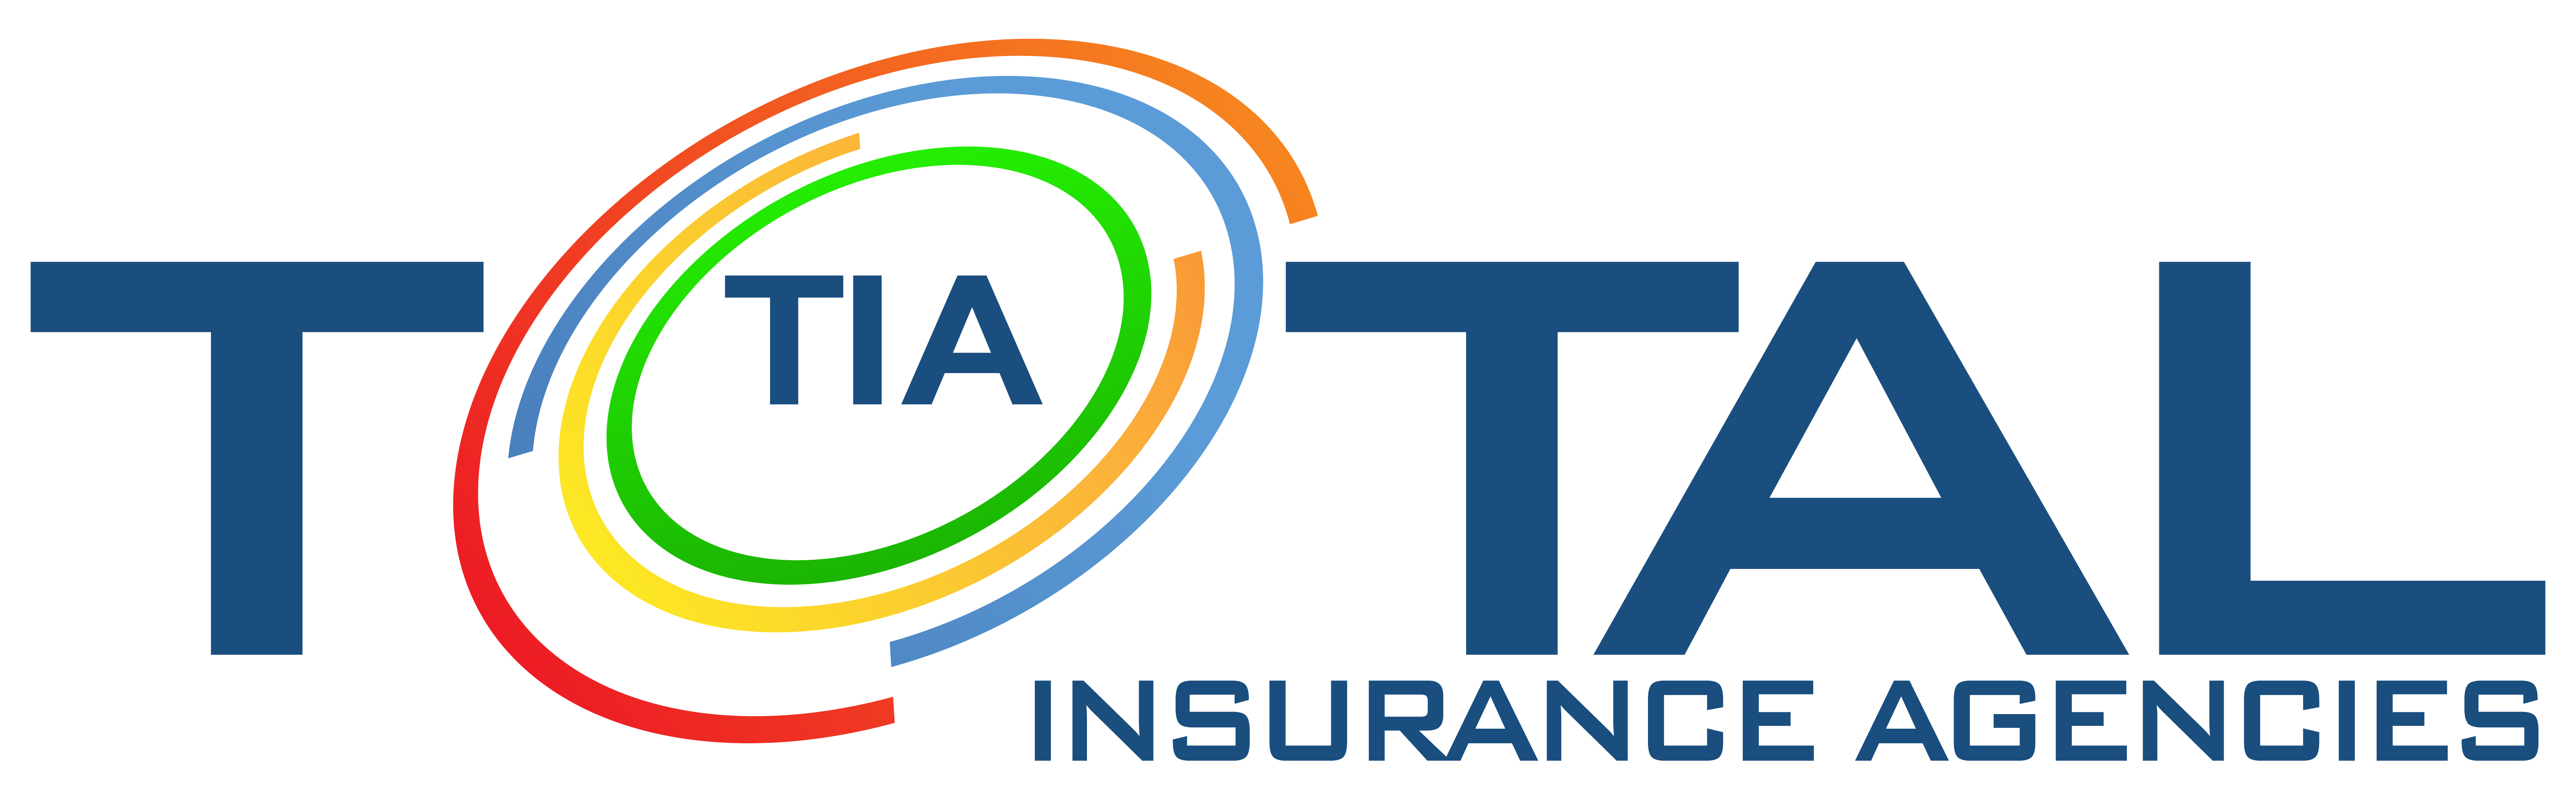 Total Insurance Agencies